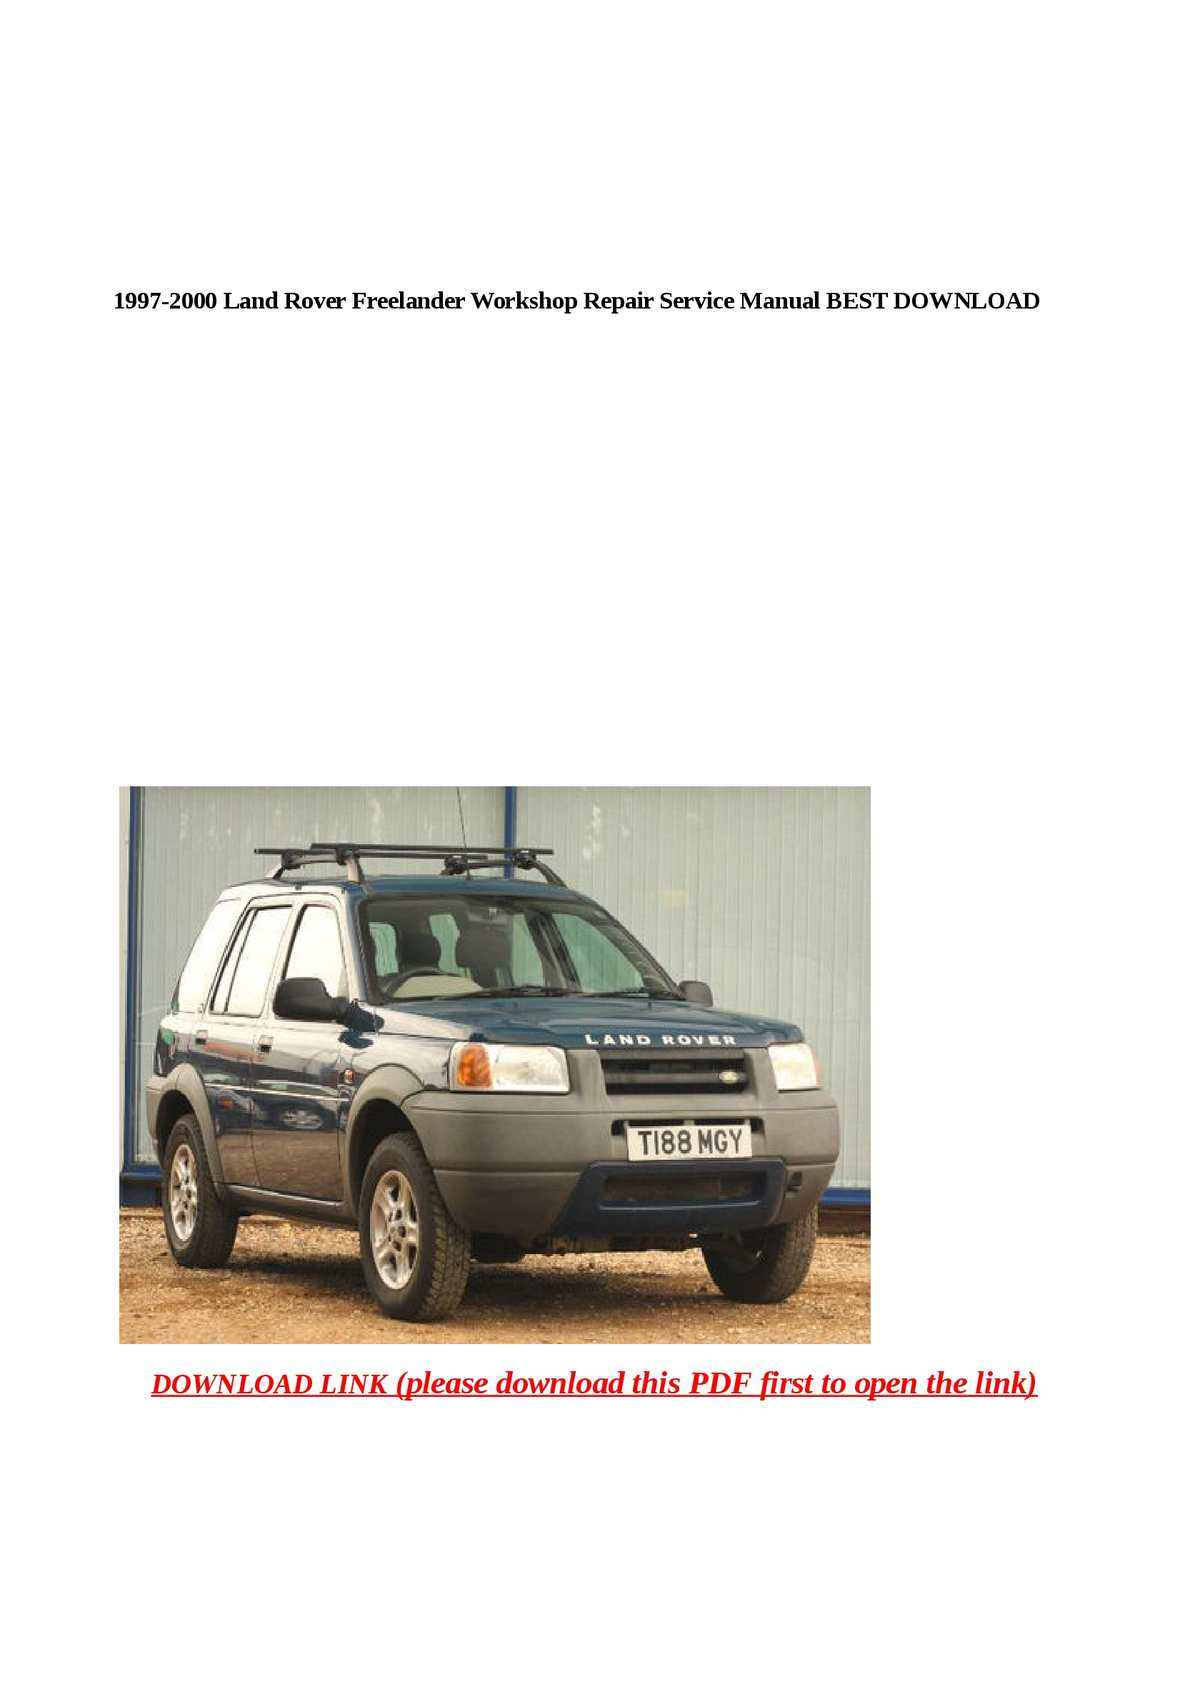 Calamo 1997 2000 Land Rover Freelander Workshop Repair Service Discovery Engine Diagram Manual Best Download